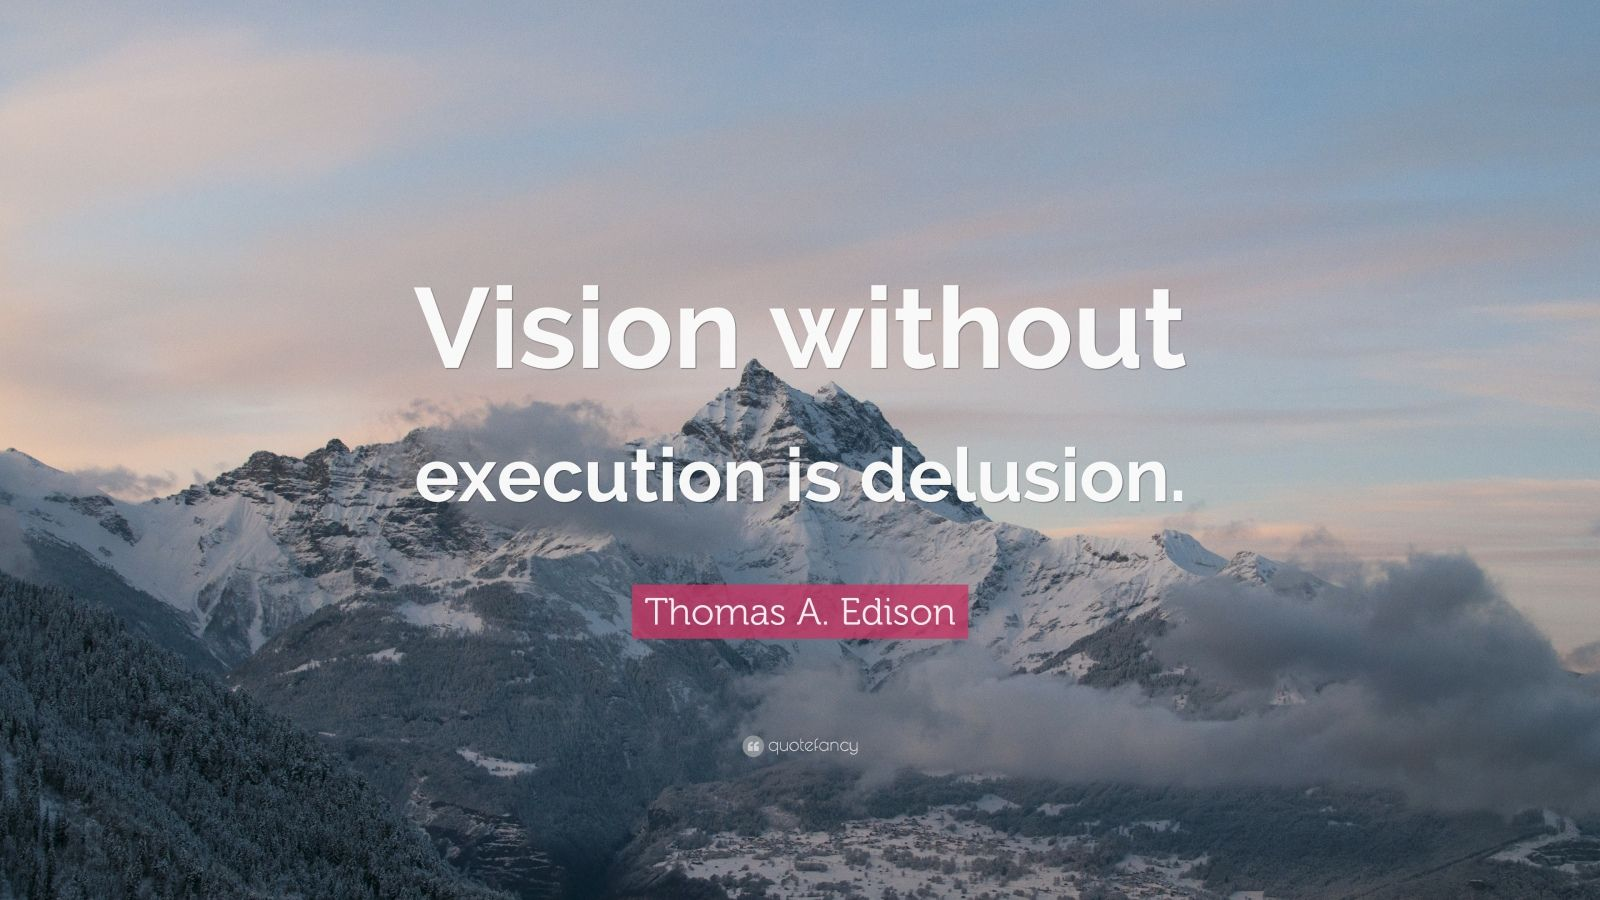 Vision Quotes (40 wallpapers) - Quotefancy